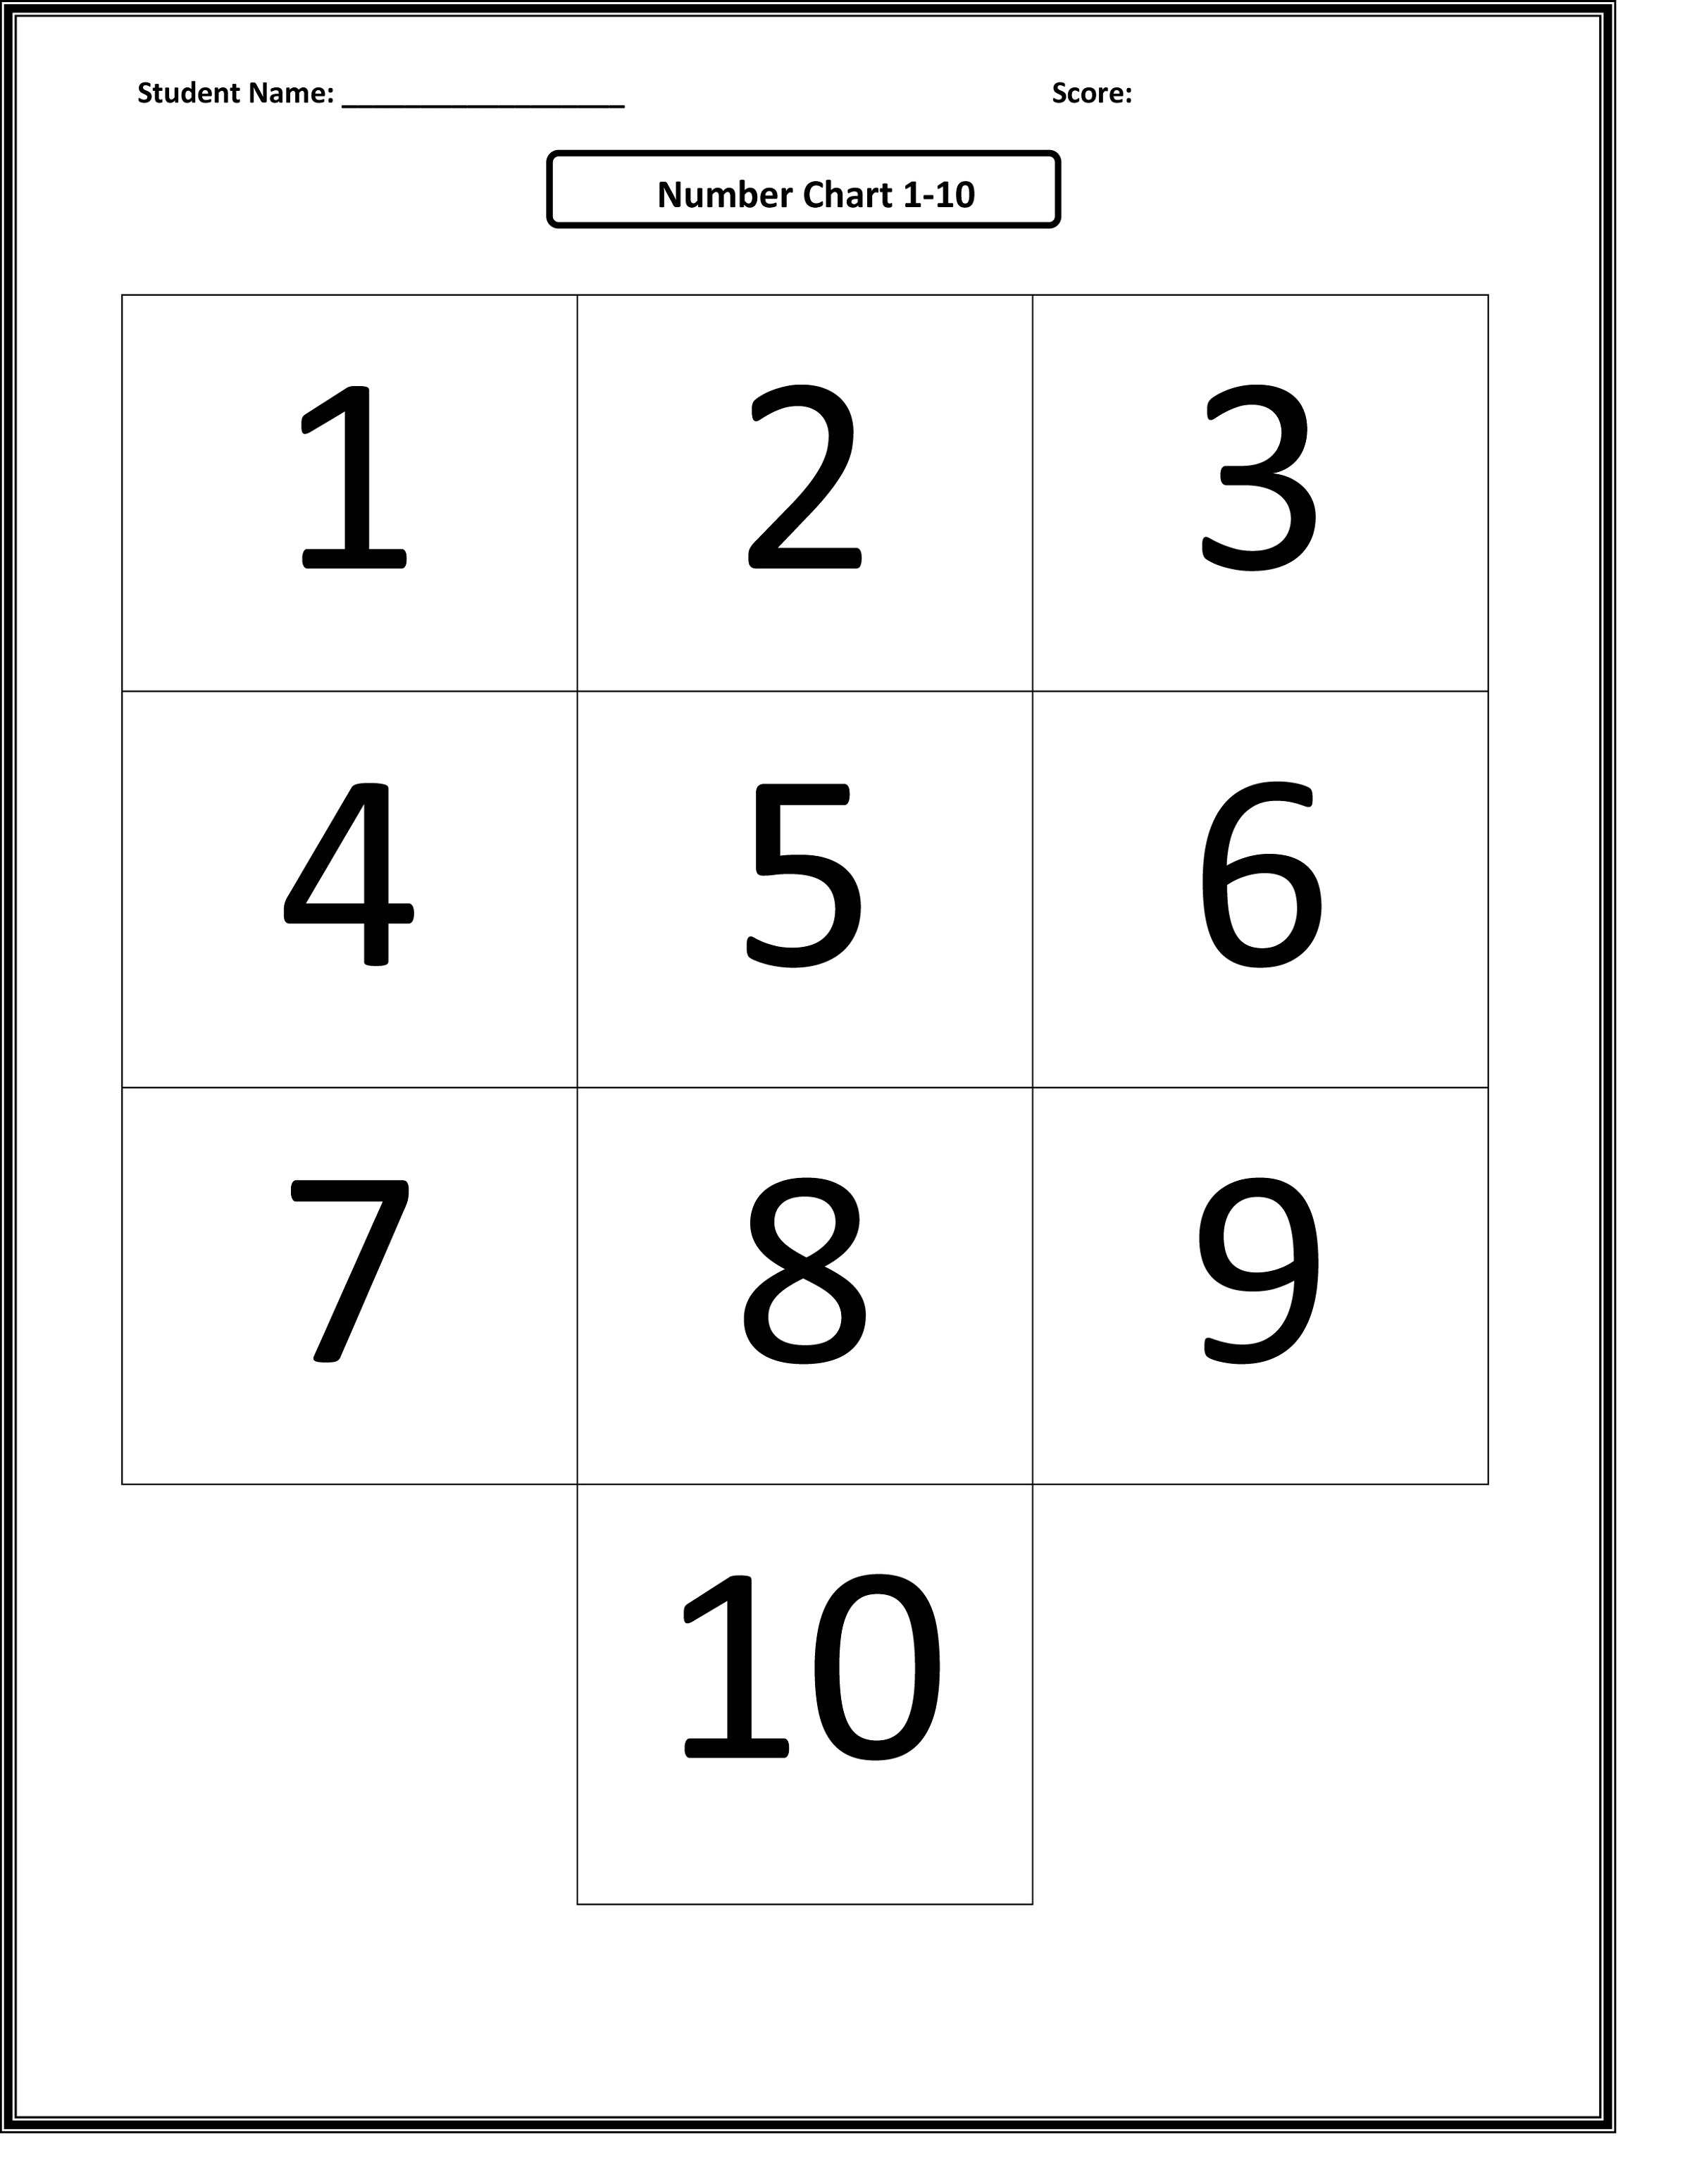 Printable Number Charts 1-10 | Activity Shelter - Free Printable Number Chart 1 10